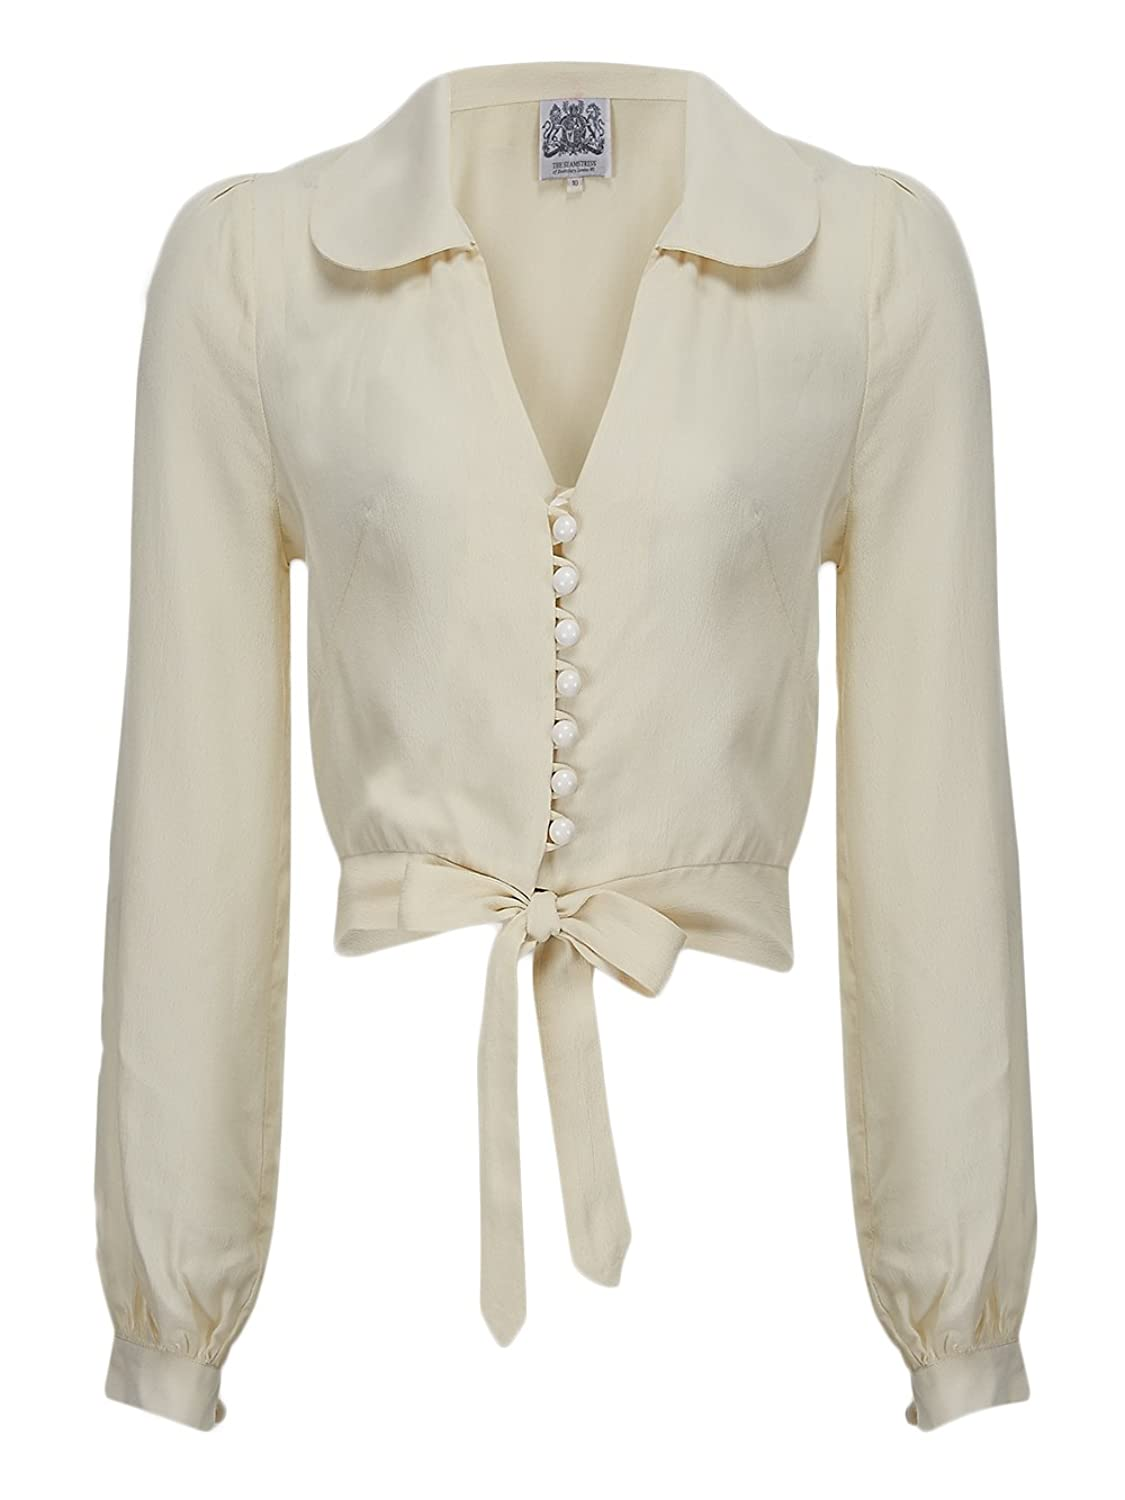 1940s Dresses and Clothing UK | 40s Shoes UK 1940s/50s Authentic Vintage Inspired Button Up Tie Down Blouse in Cream £39.00 AT vintagedancer.com